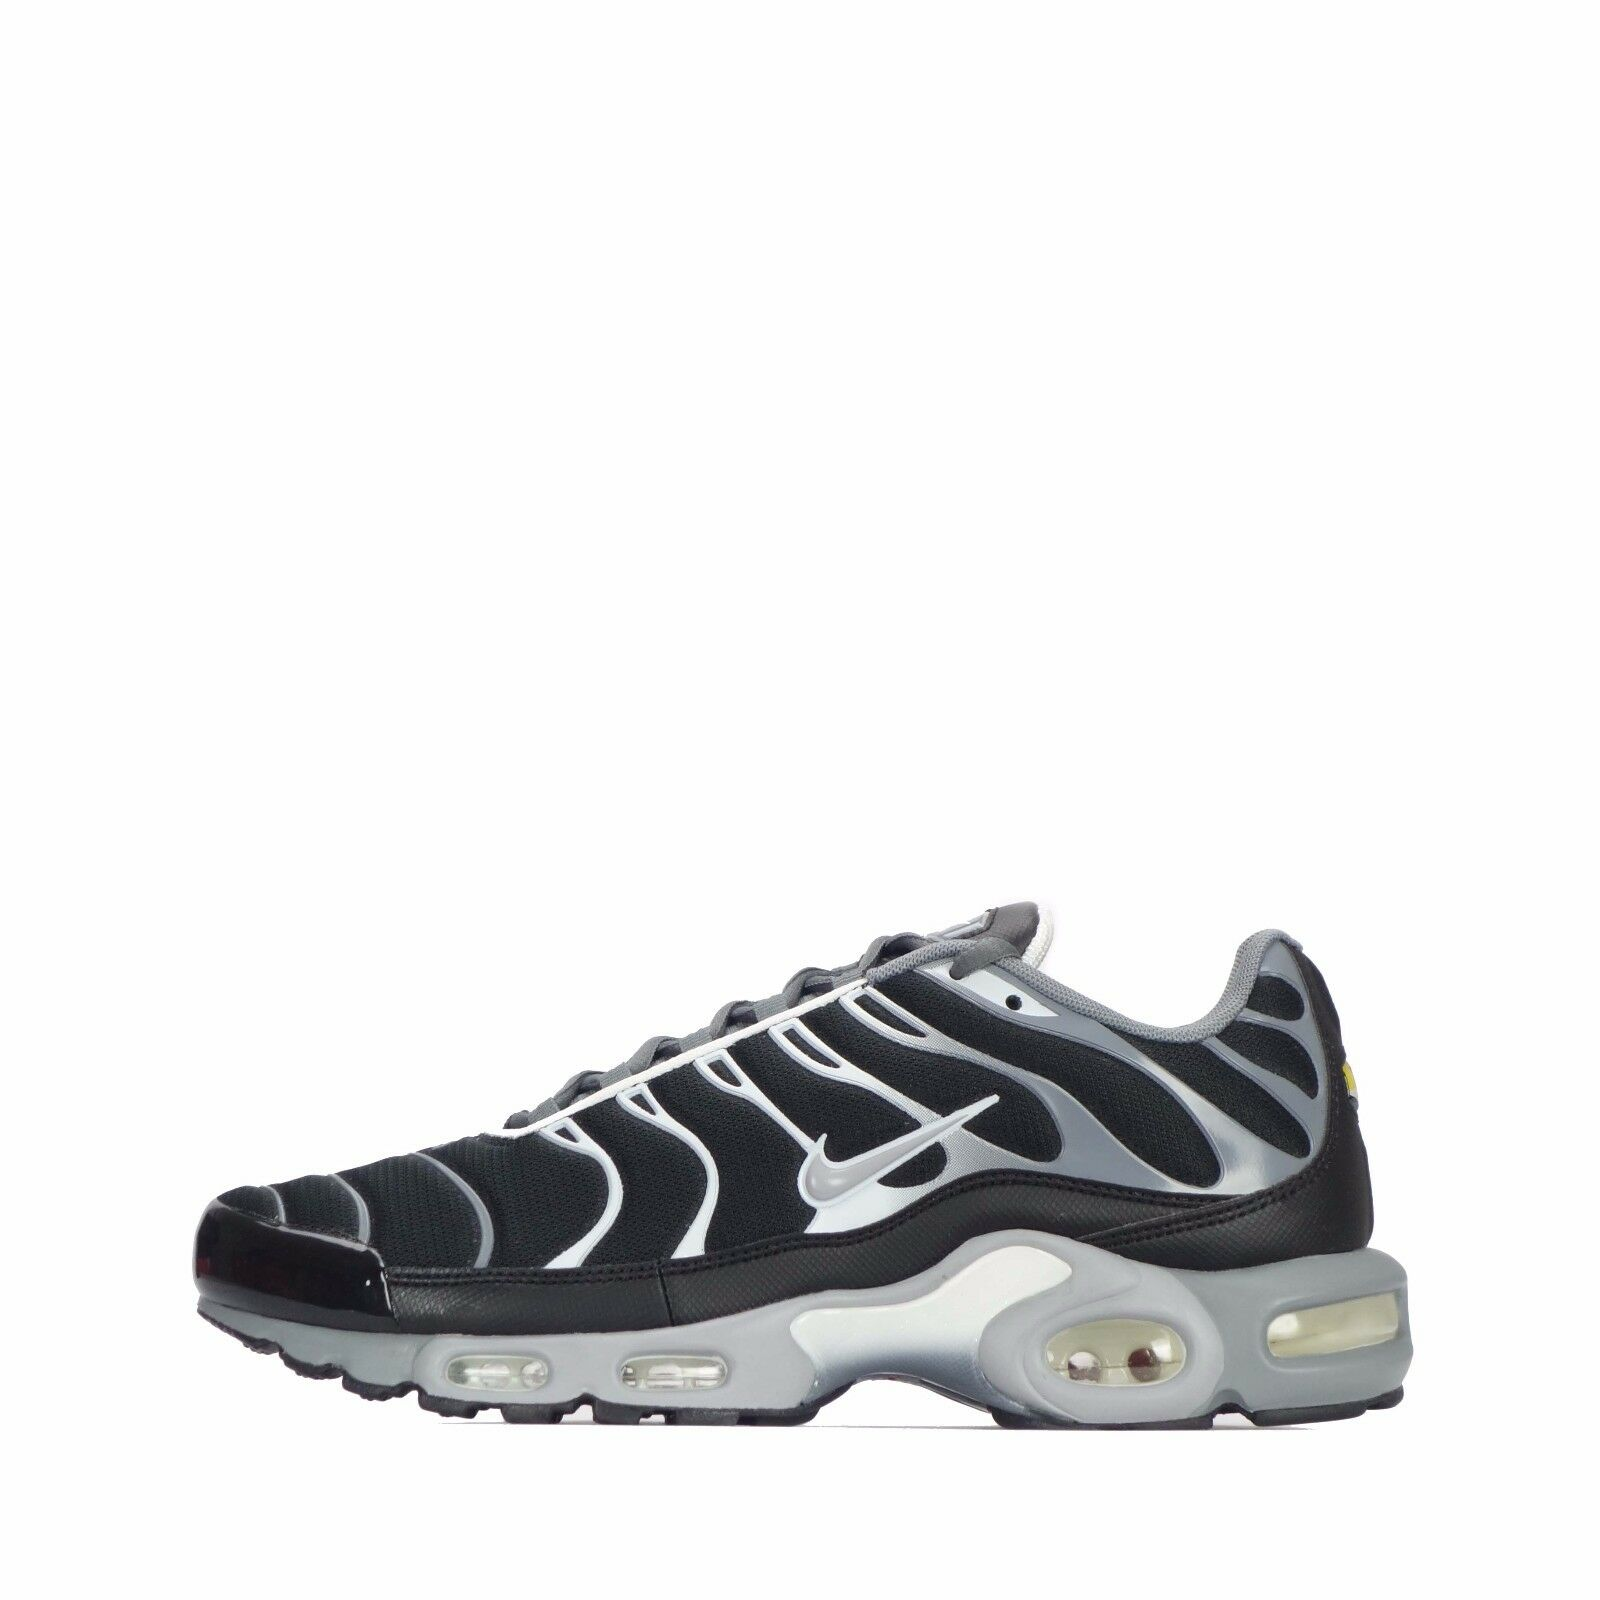 Nike Air Max Max Max Plus TN1 Tuned Mens Trainers shoes Cool Grey Wolf Grey 673312